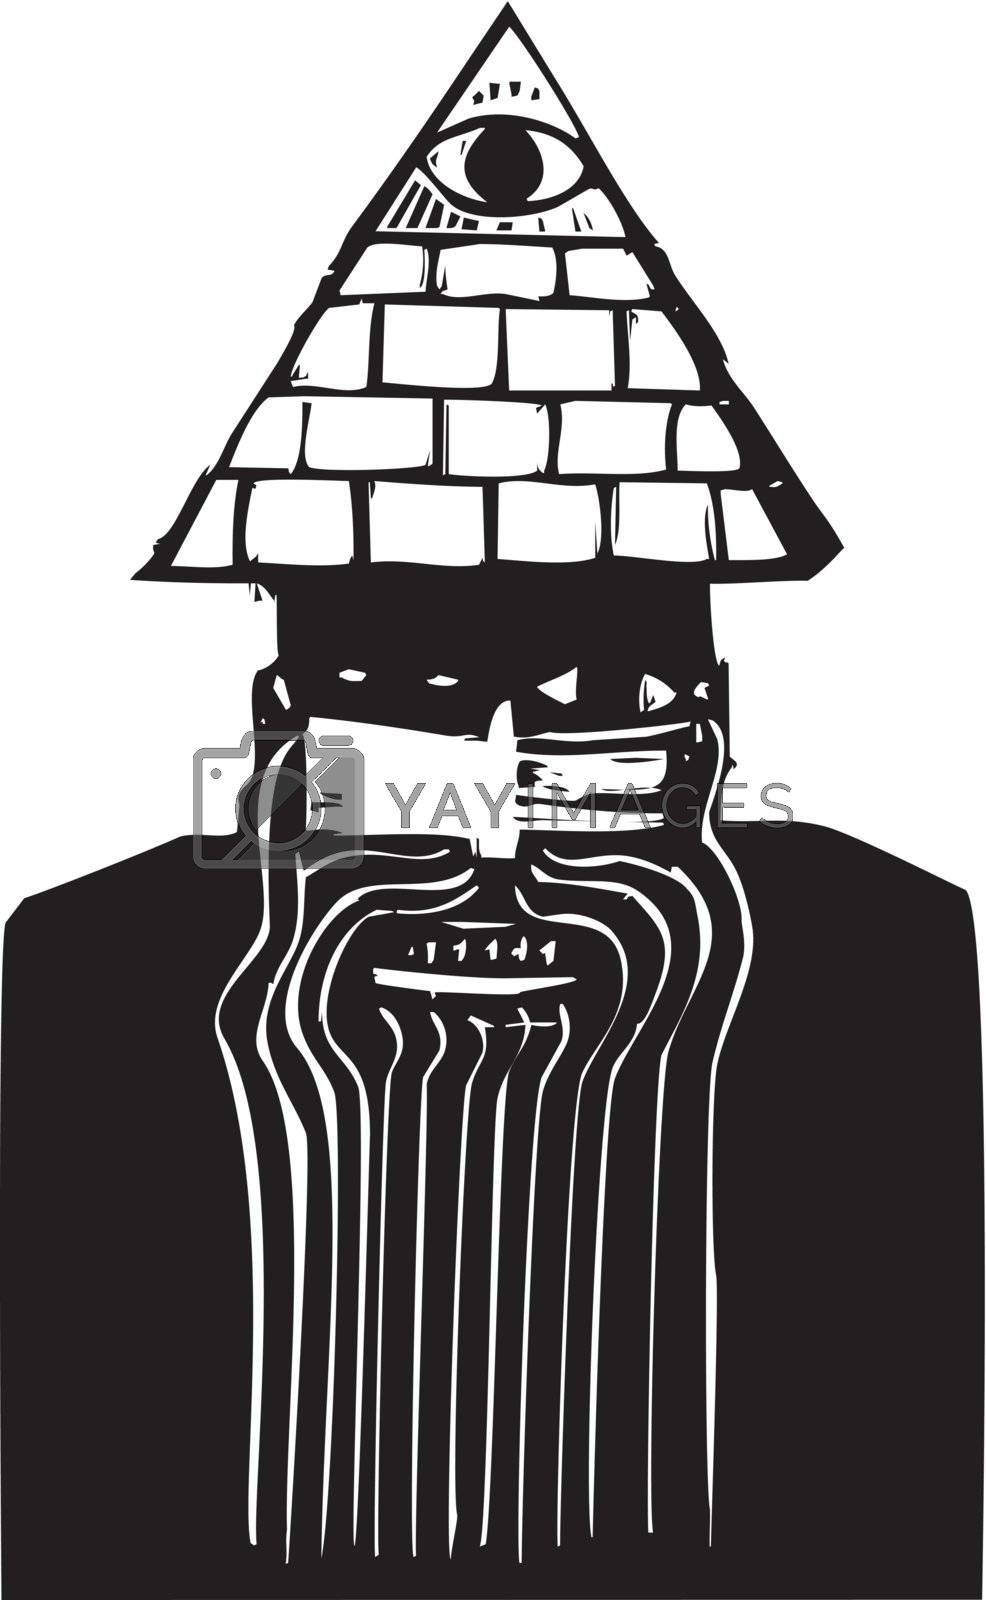 Crazy looking man with a pyramid hat in woodcut style.